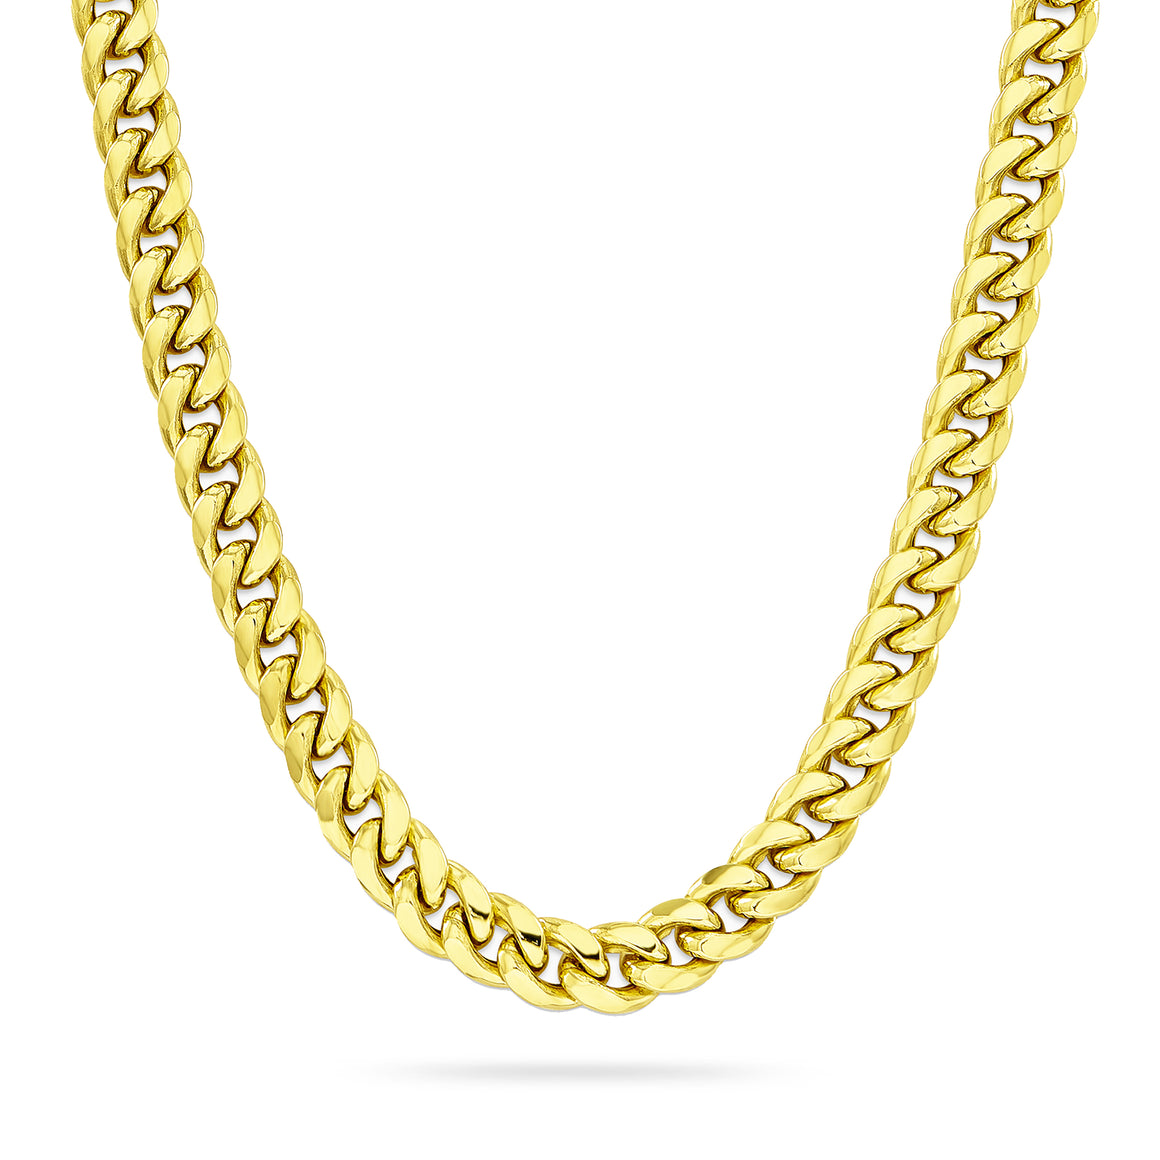 6mm Cuban Link Chain, Gold